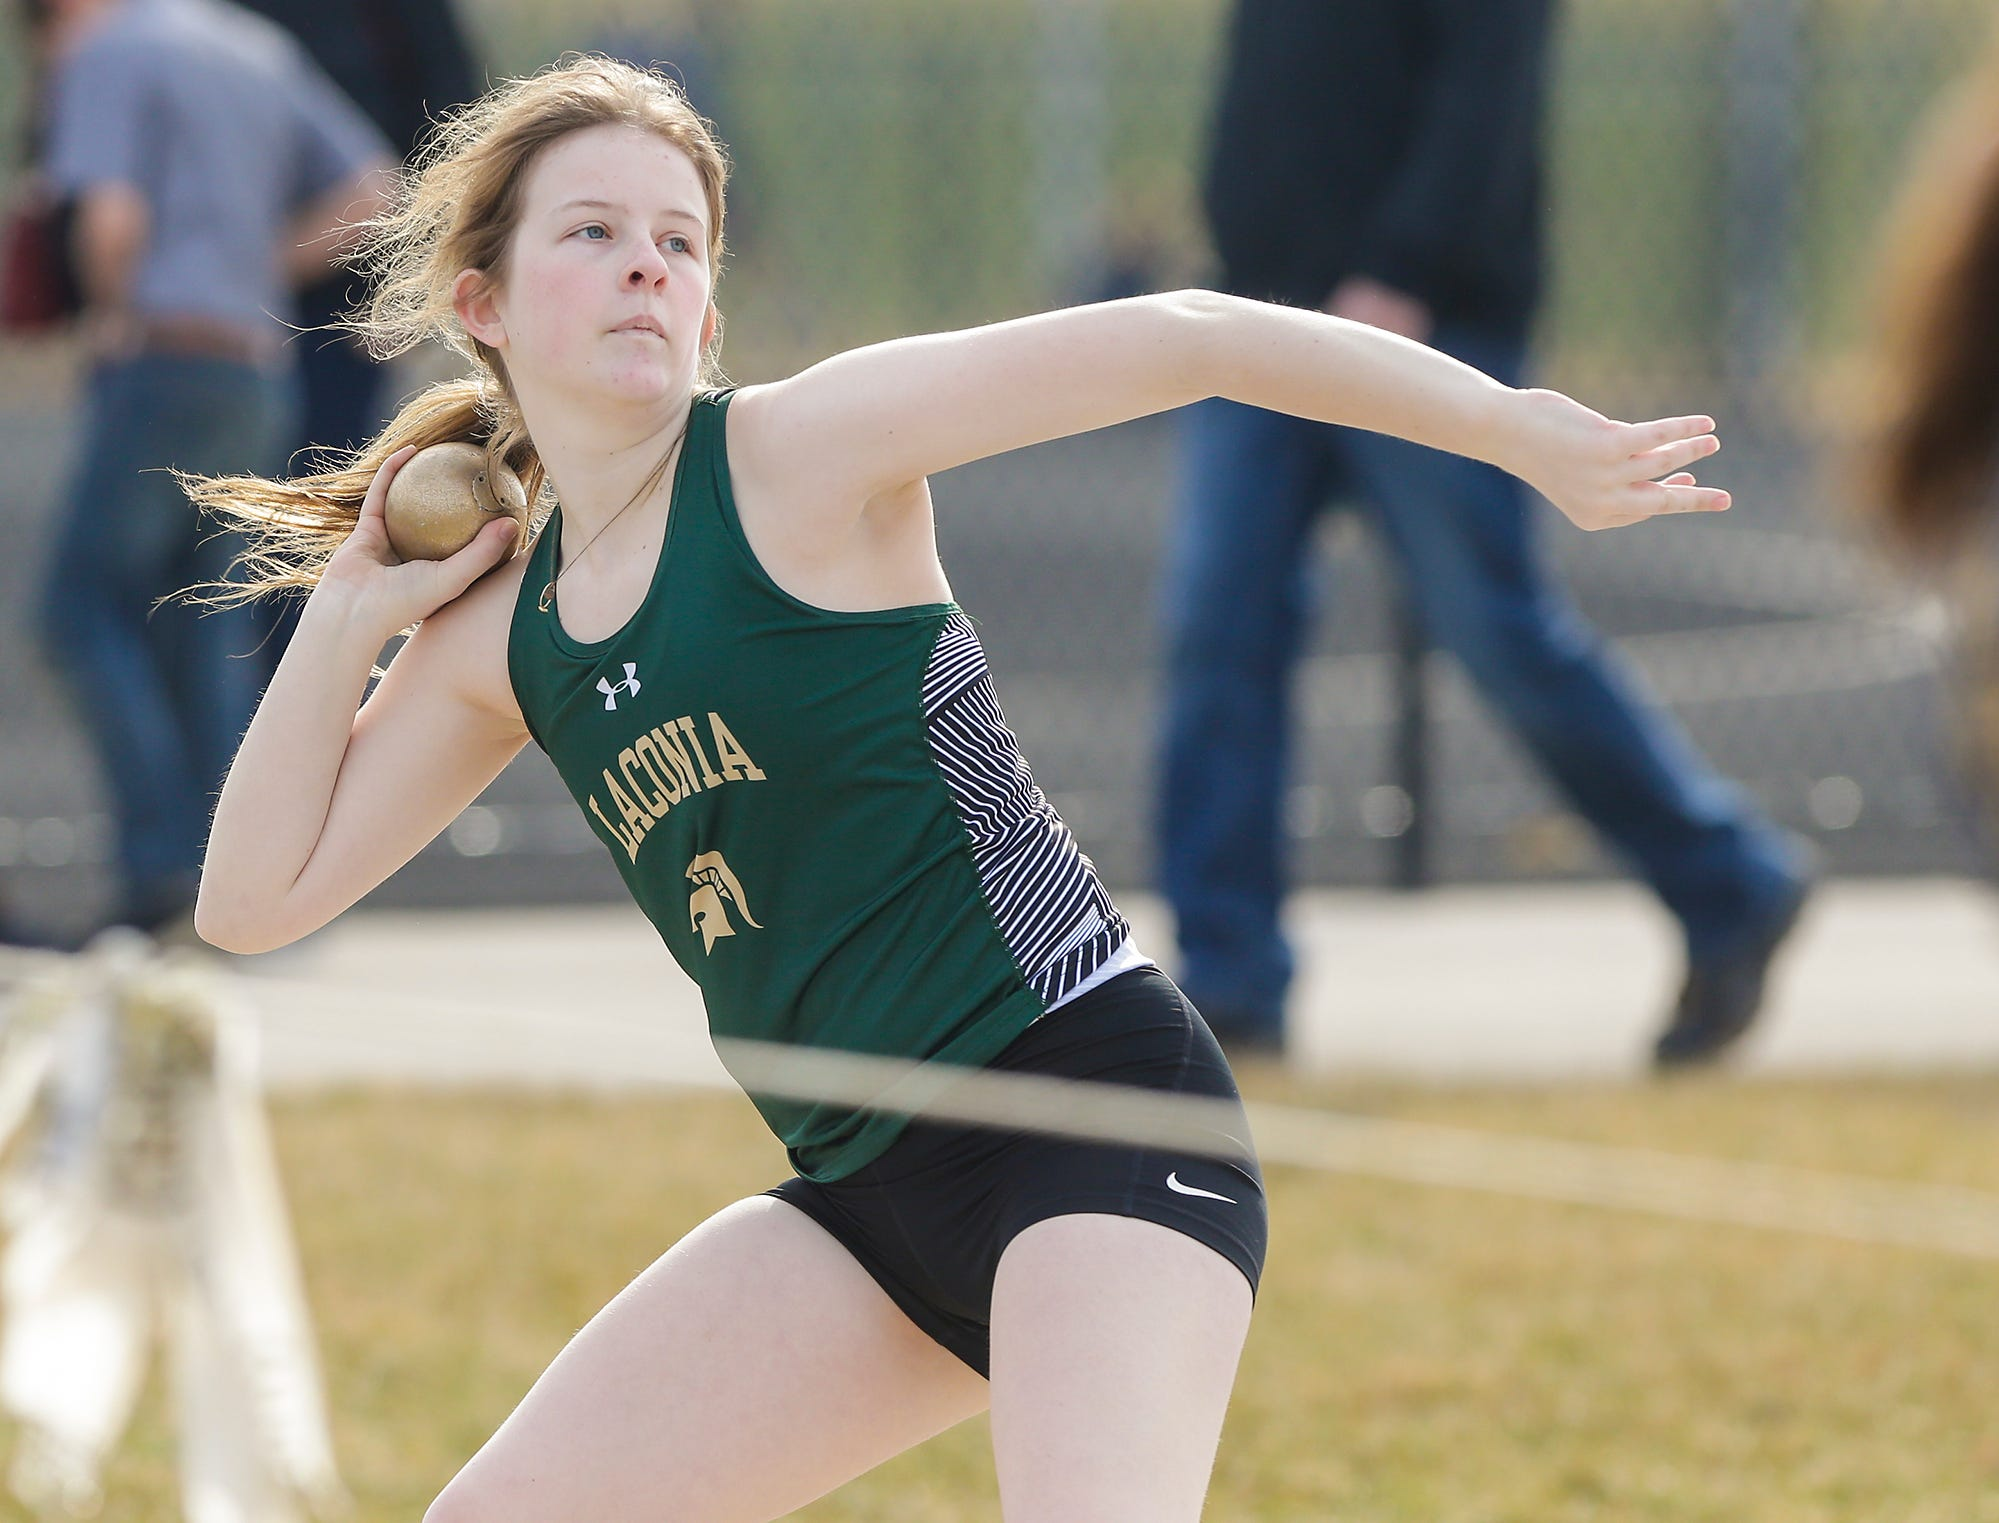 Laconia High School's Alexis Coffeen takes part in the shot putt Tuesday, April 16, 2019 at North Fond du Lac High School in North Fond du Lac, Wis. Doug Raflik/USA TODAY NETWORK-Wisconsin